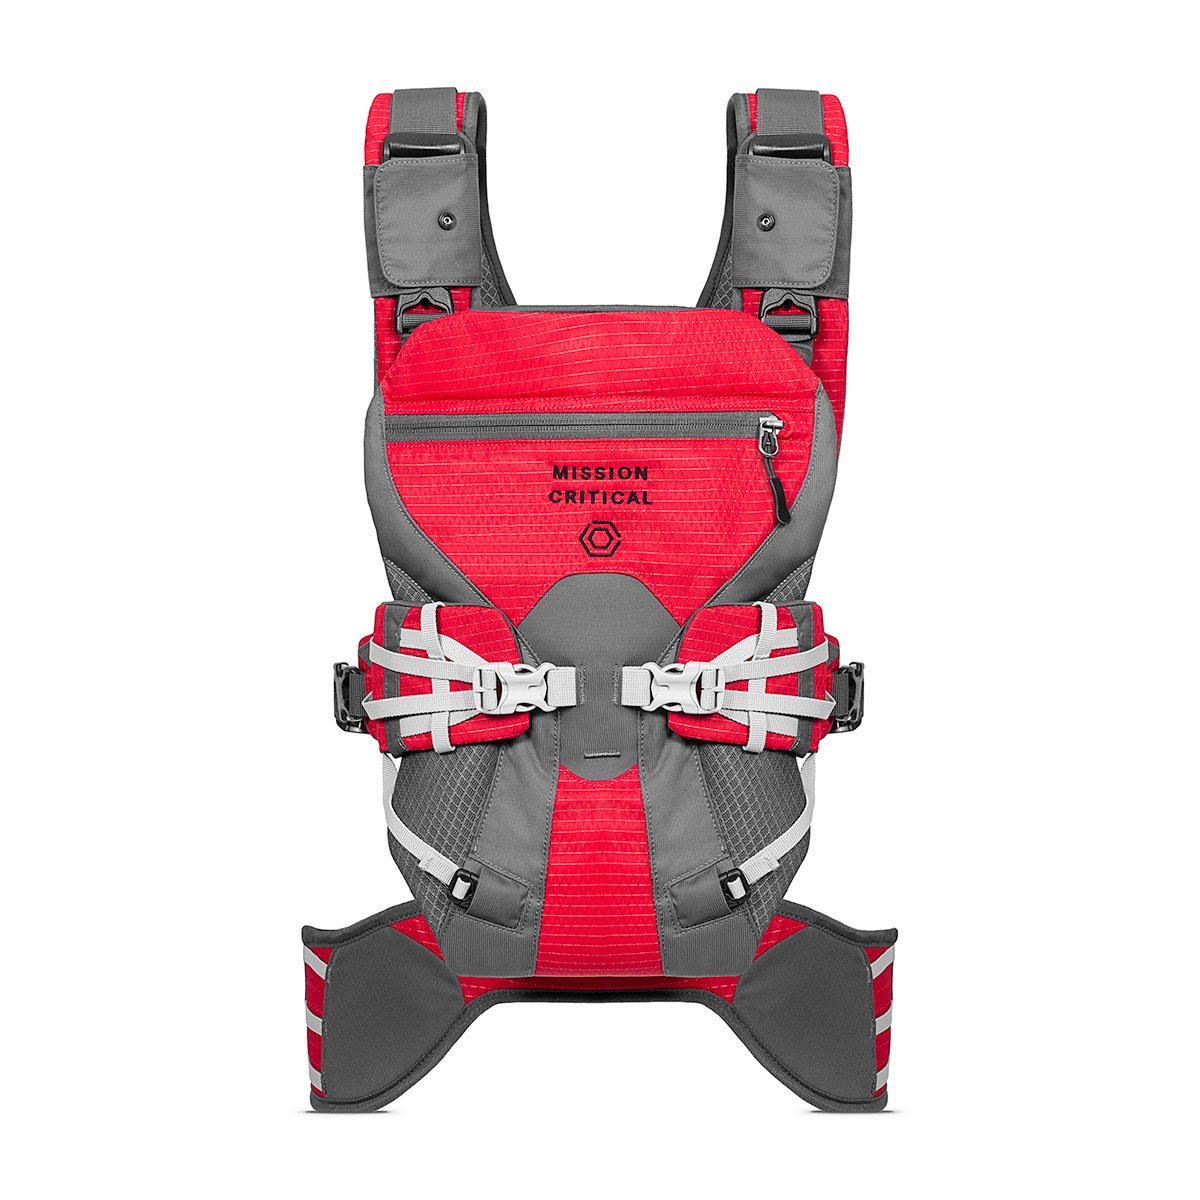 S.02 Adventure Baby Carrier - Outland Kit